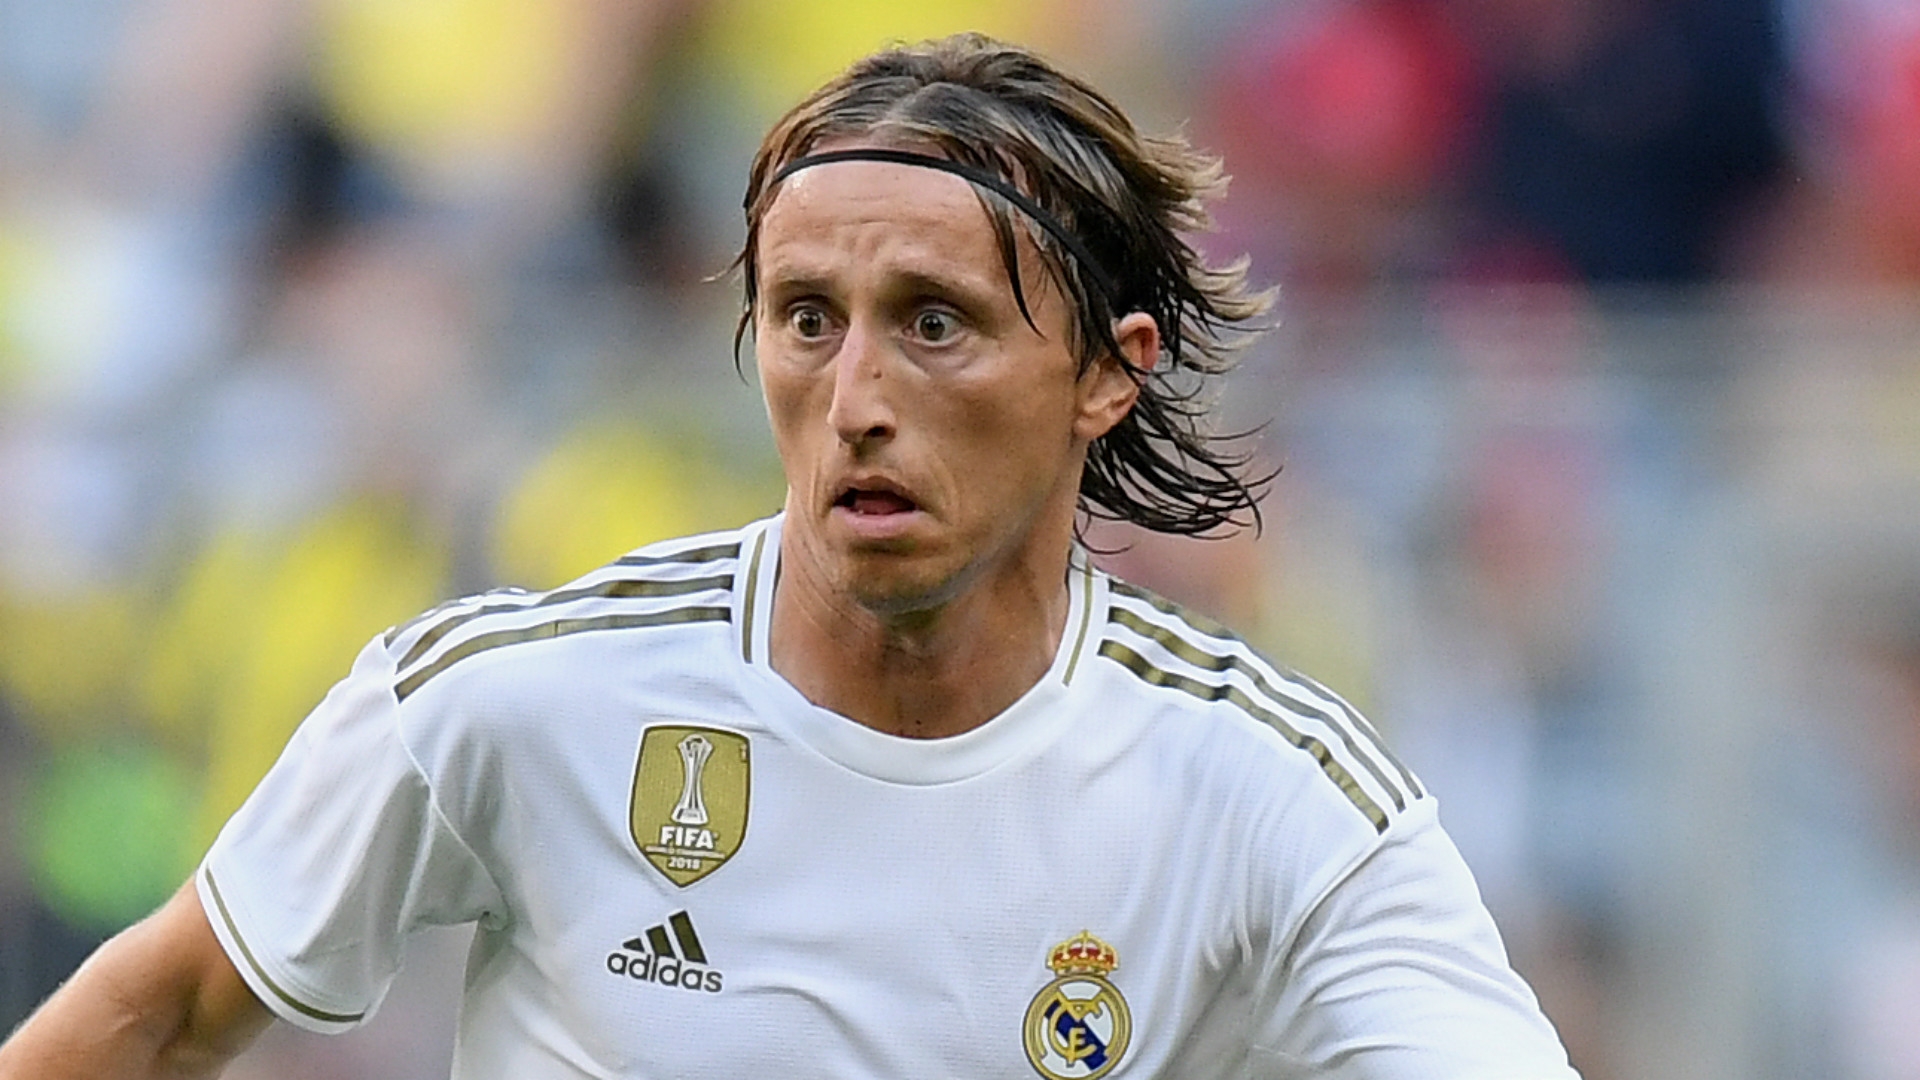 'We'll see if one day I can play in Italy' - Modric hints at Real departure